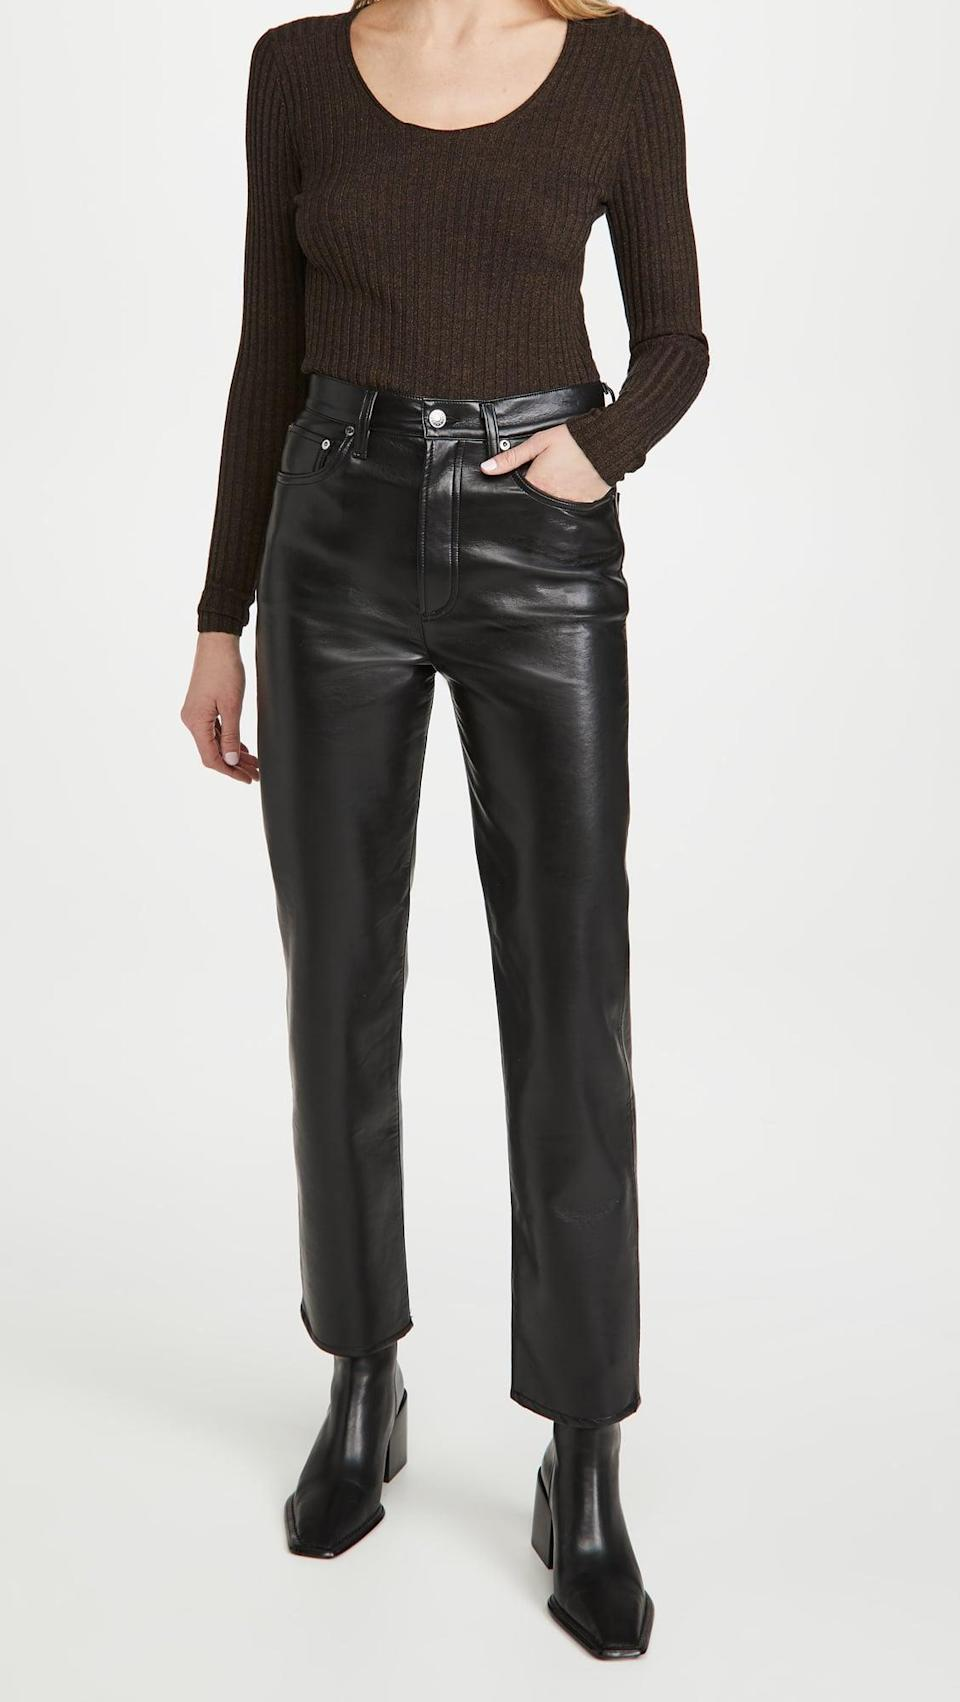 <p>These <span>Agolde Recycled Leather Fitted '90s Pants</span> ($298) are a splurge-worthy investment you'll treasure for years. You can easily dress them up with heels or down with sneakers.</p>